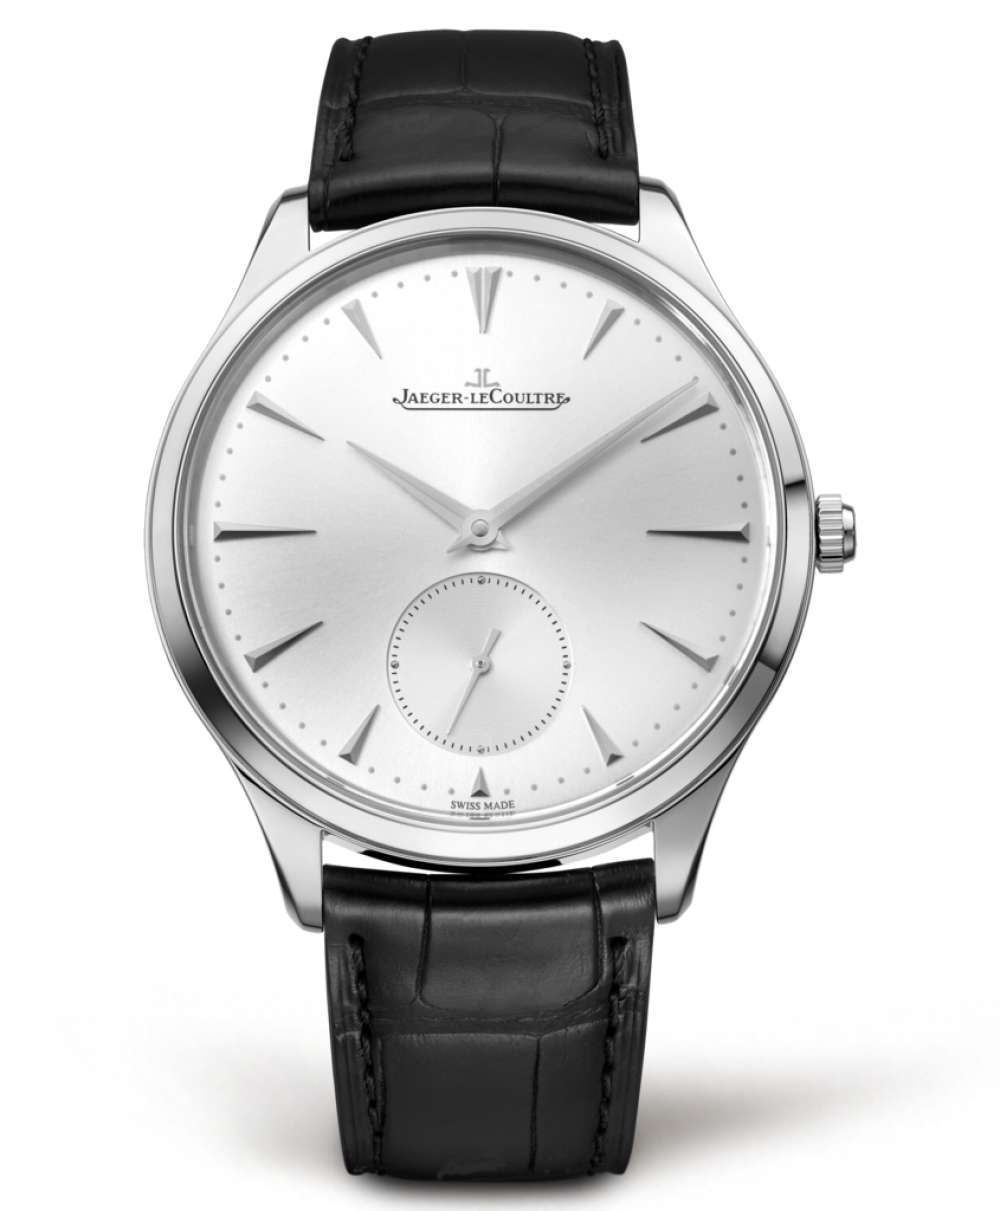 Jaeger-LeCoultre Master Ultra Thin Small Second 1053261 dress watch front